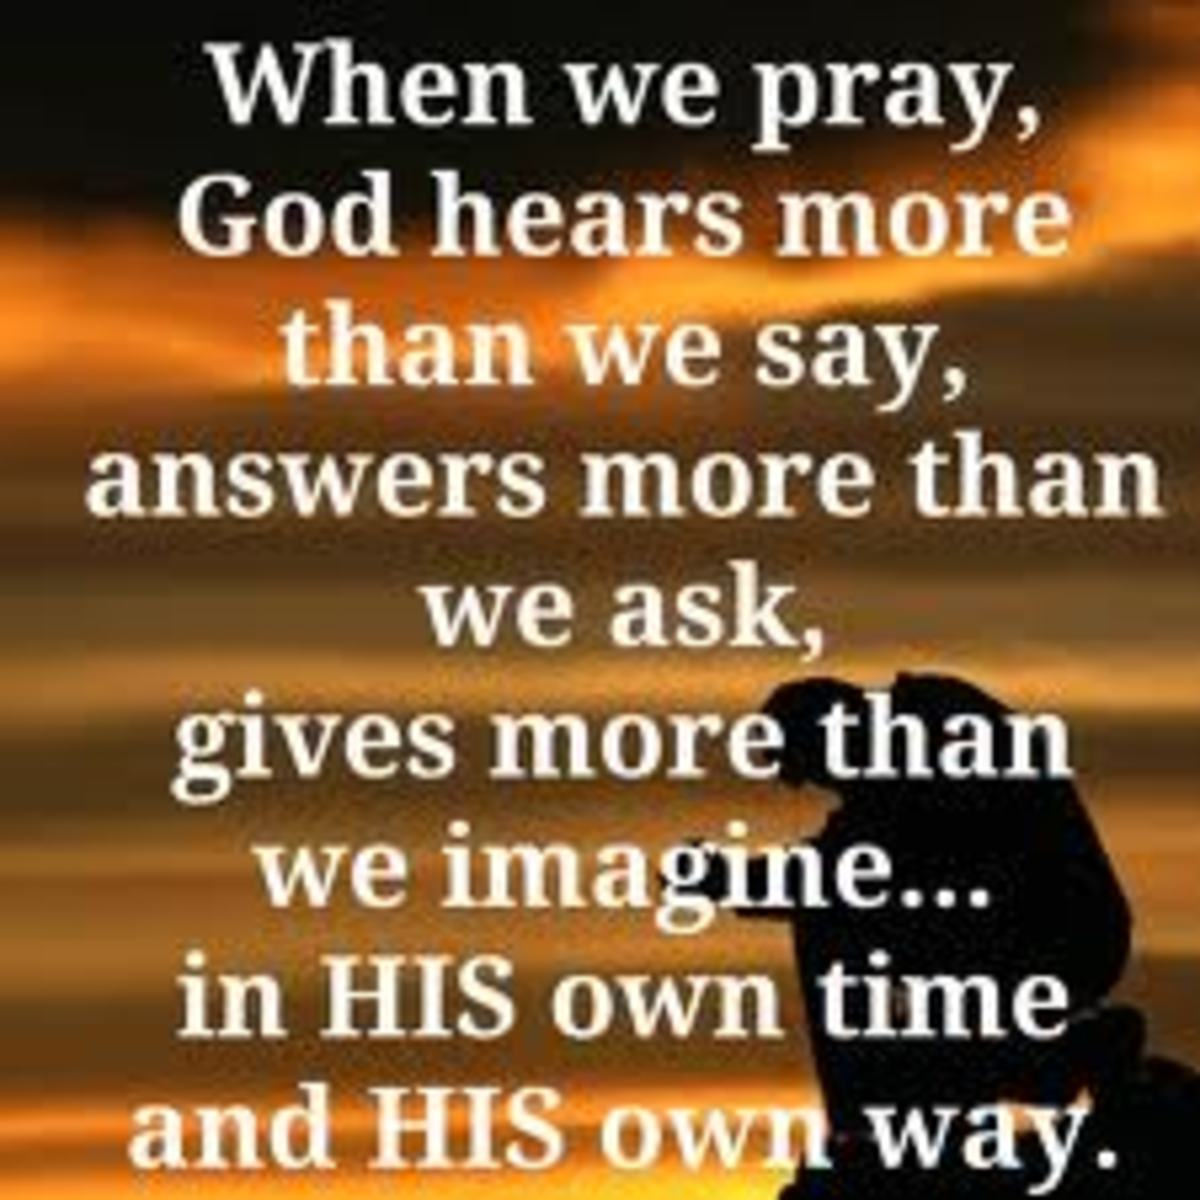 We need to believe that our prayers to God is the best prayer of them all, so let us pray God when we need God's help, even if it is just to make our minds up about something.